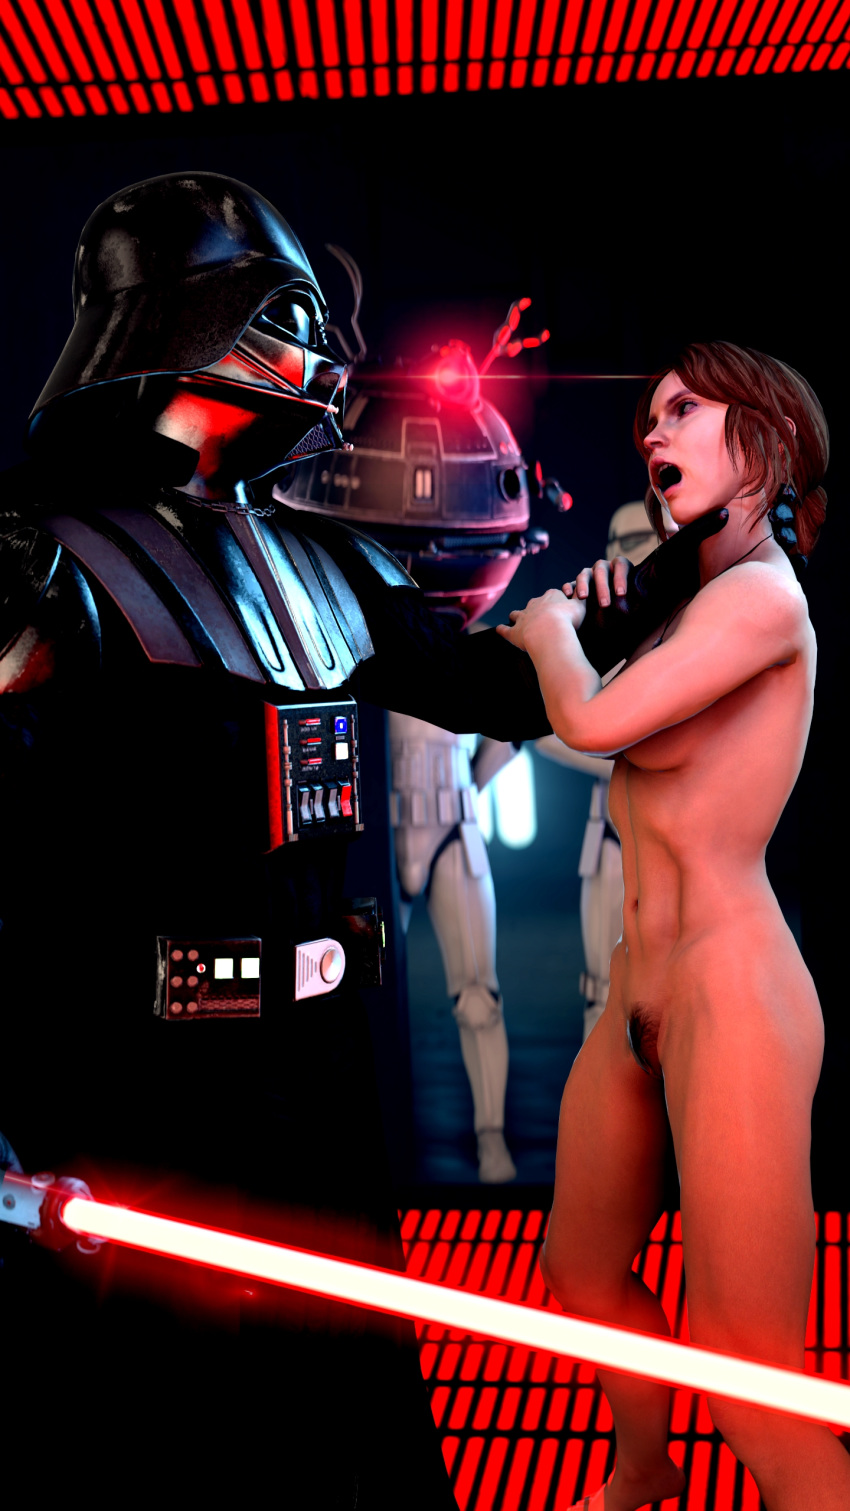 rogue wars star one naked As told by ginger carl